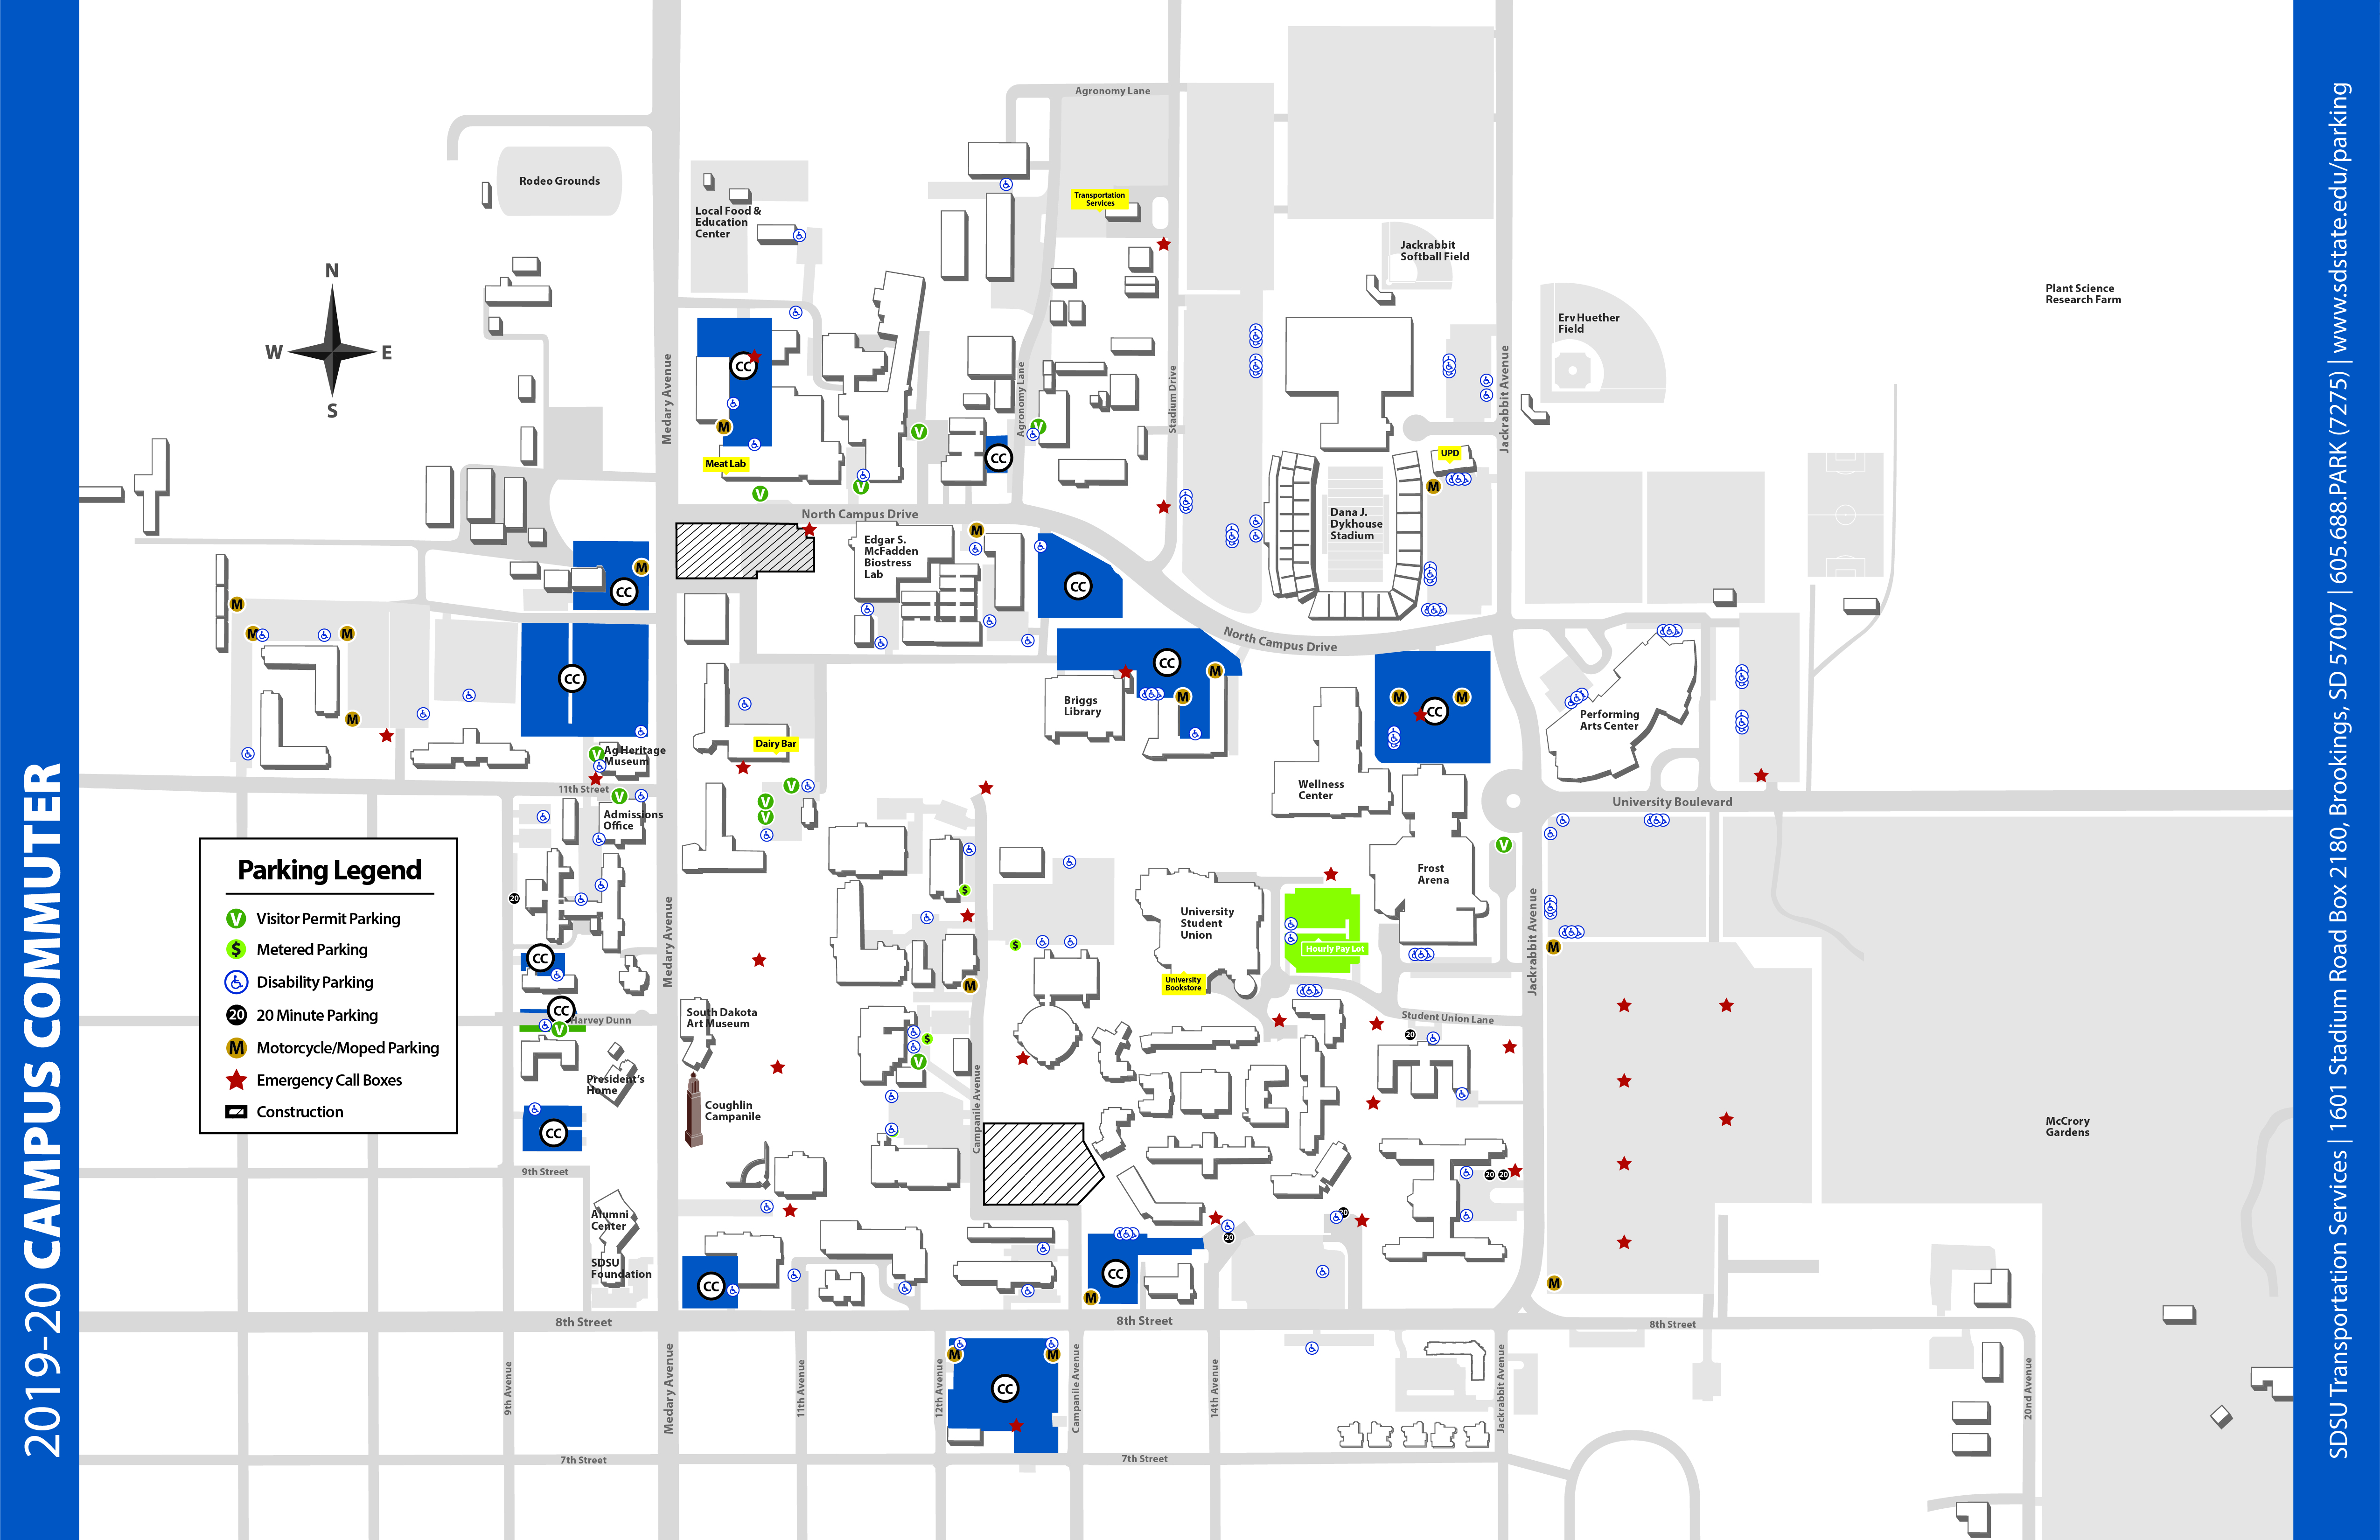 Parking Maps | South Dakota State University on mn map, vg map, wy map, co map, il map, wi map, tx map, cif map, canada map, usa map, penh map, nd map, kr map, id map, pal map, south dakota highway map, ne map, tn map, et map, eastern ia map,